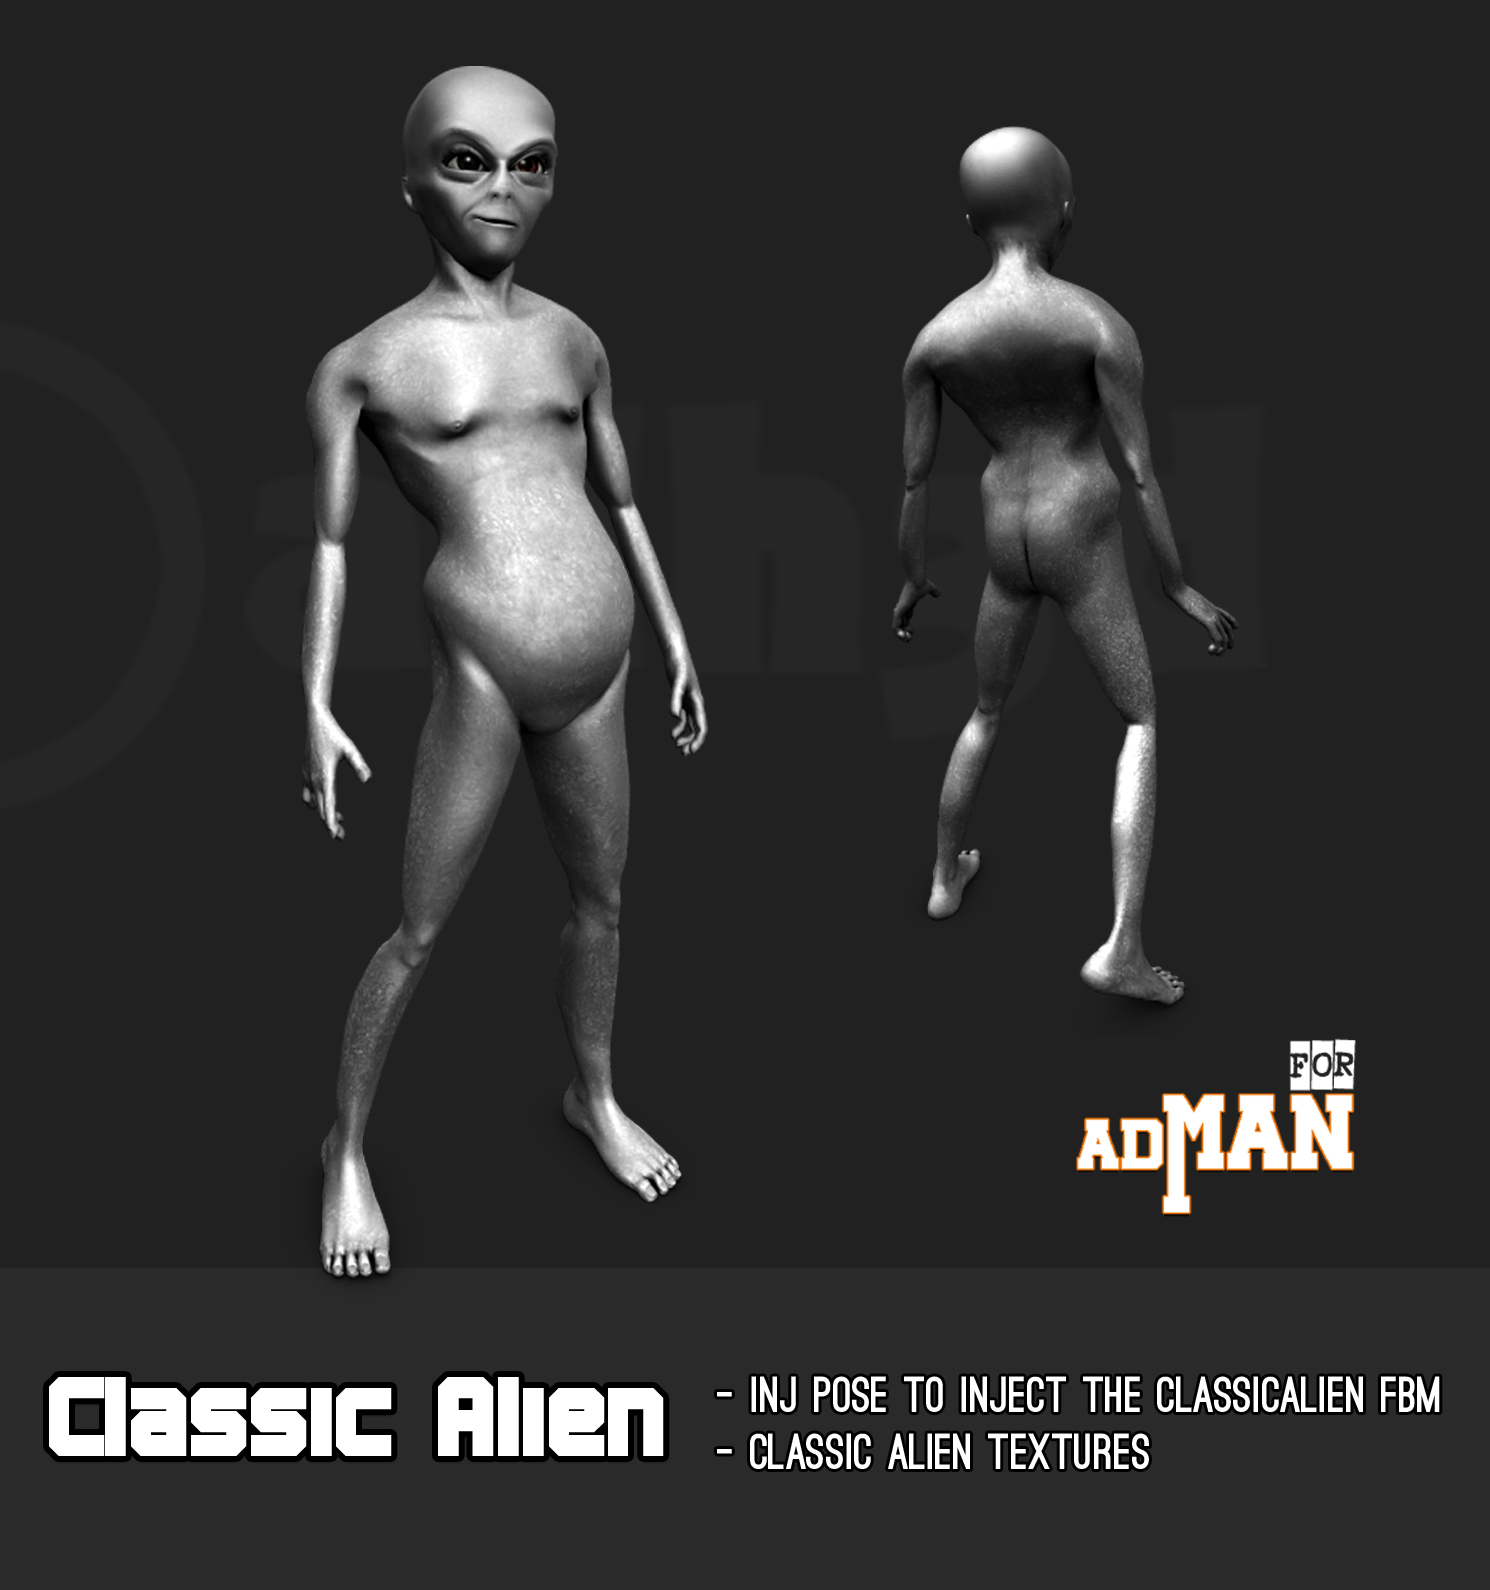 Classic Alien for adman